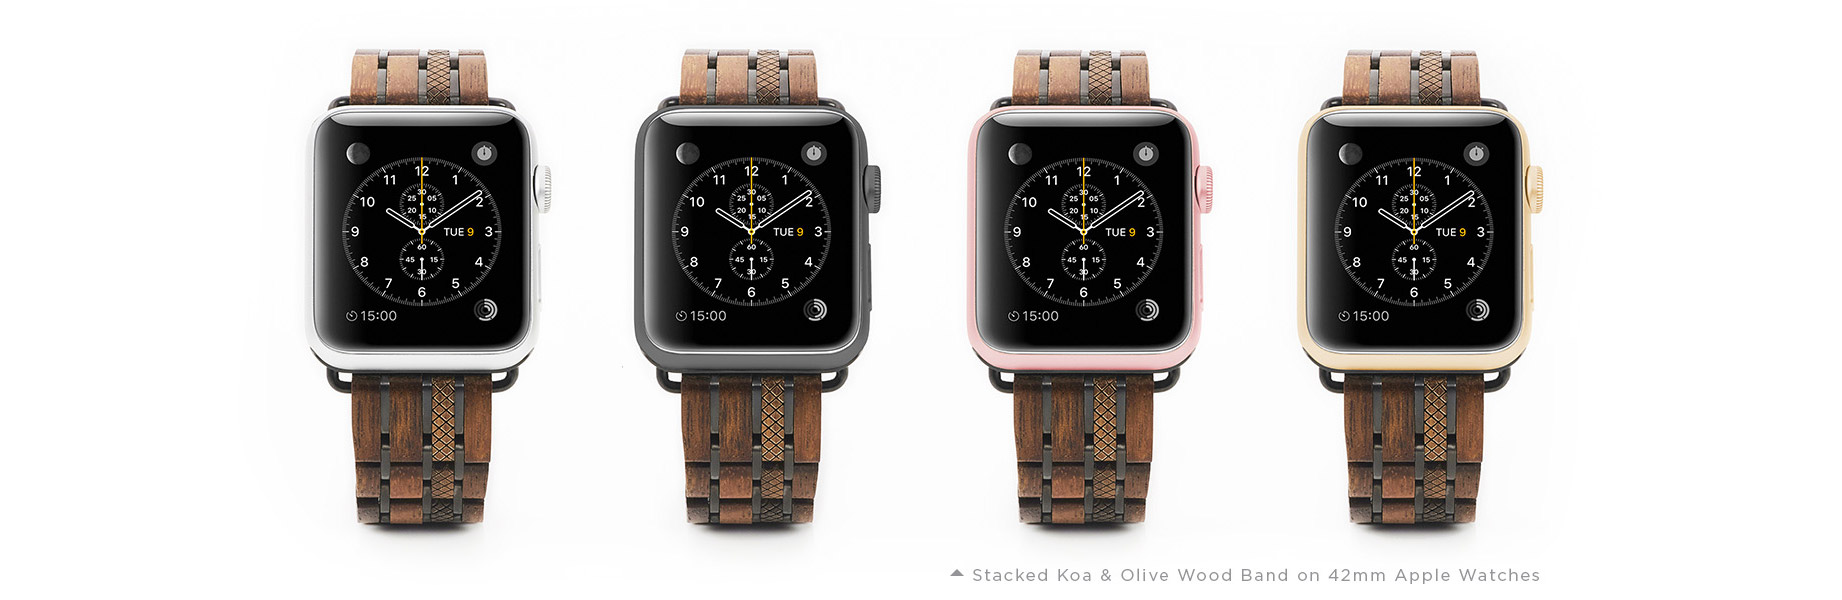 Apple Watch Band - Wood & Leather Bands - All Series   JORD